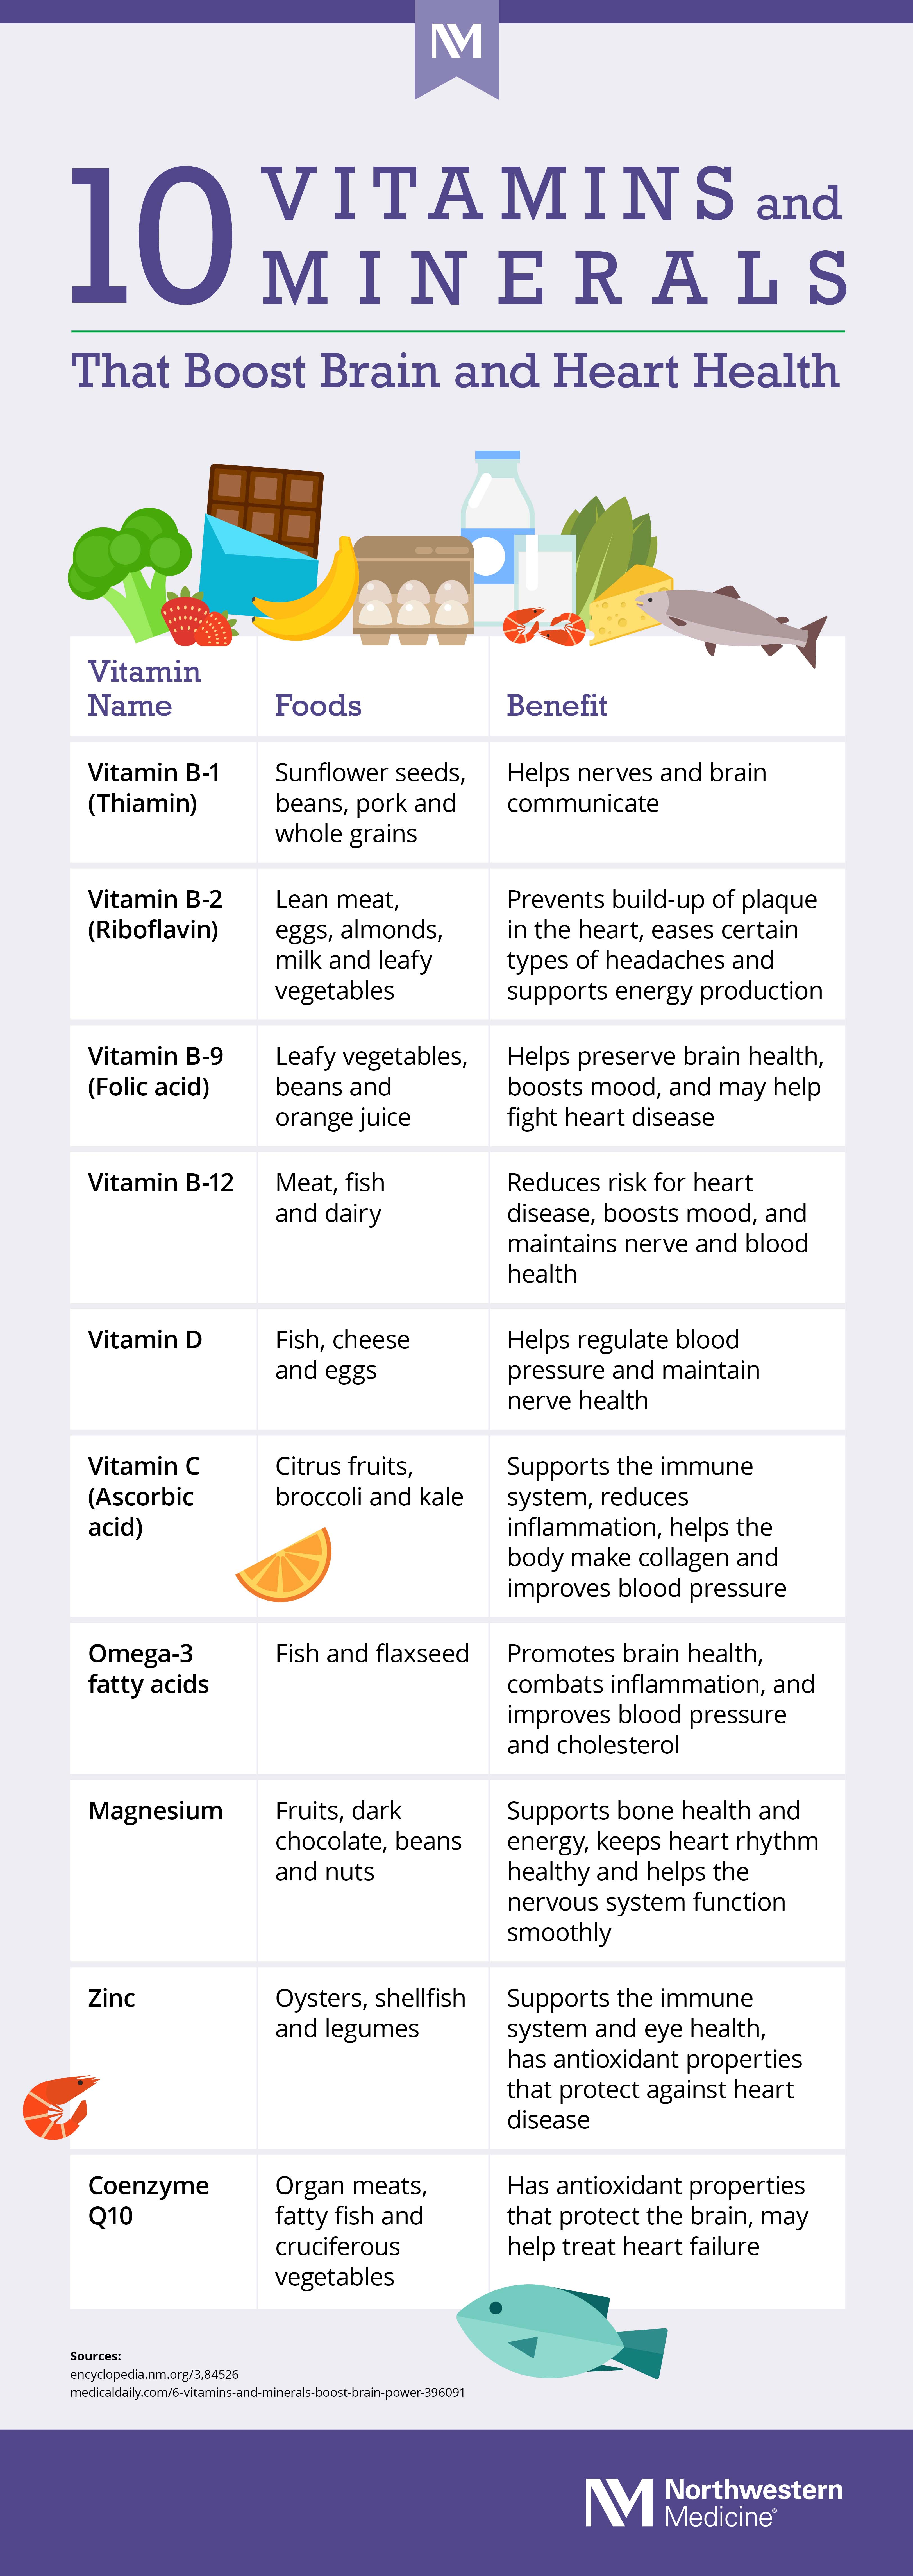 10 Vitamins And Minerals That Boost Brain And Heart Health Infographic Northwestern Medicine